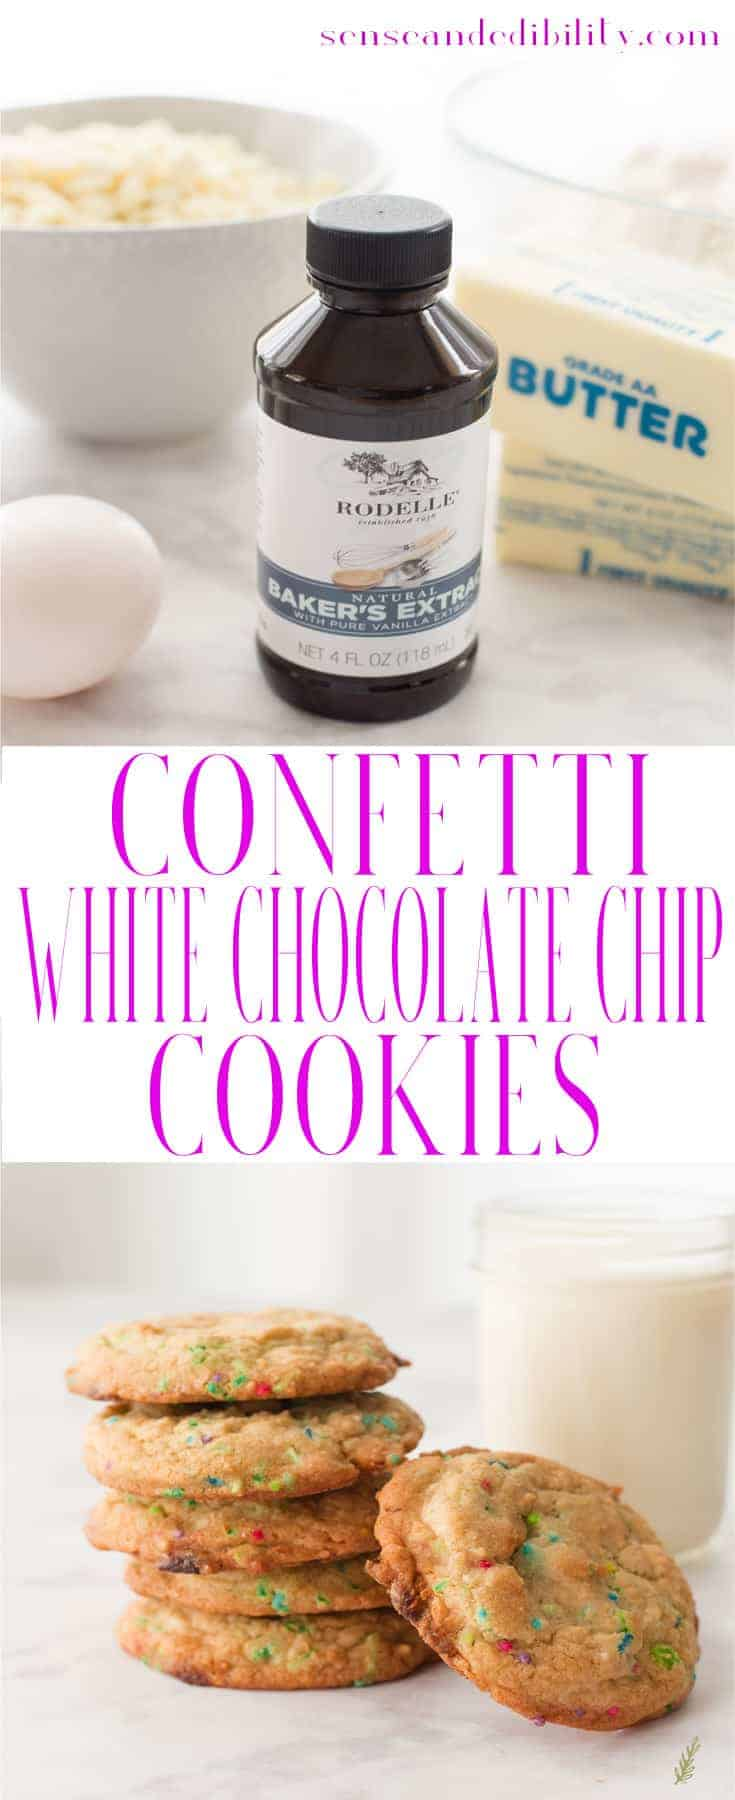 Sense & Edibility's Confetti White Chocolate Chip Cookies Pin